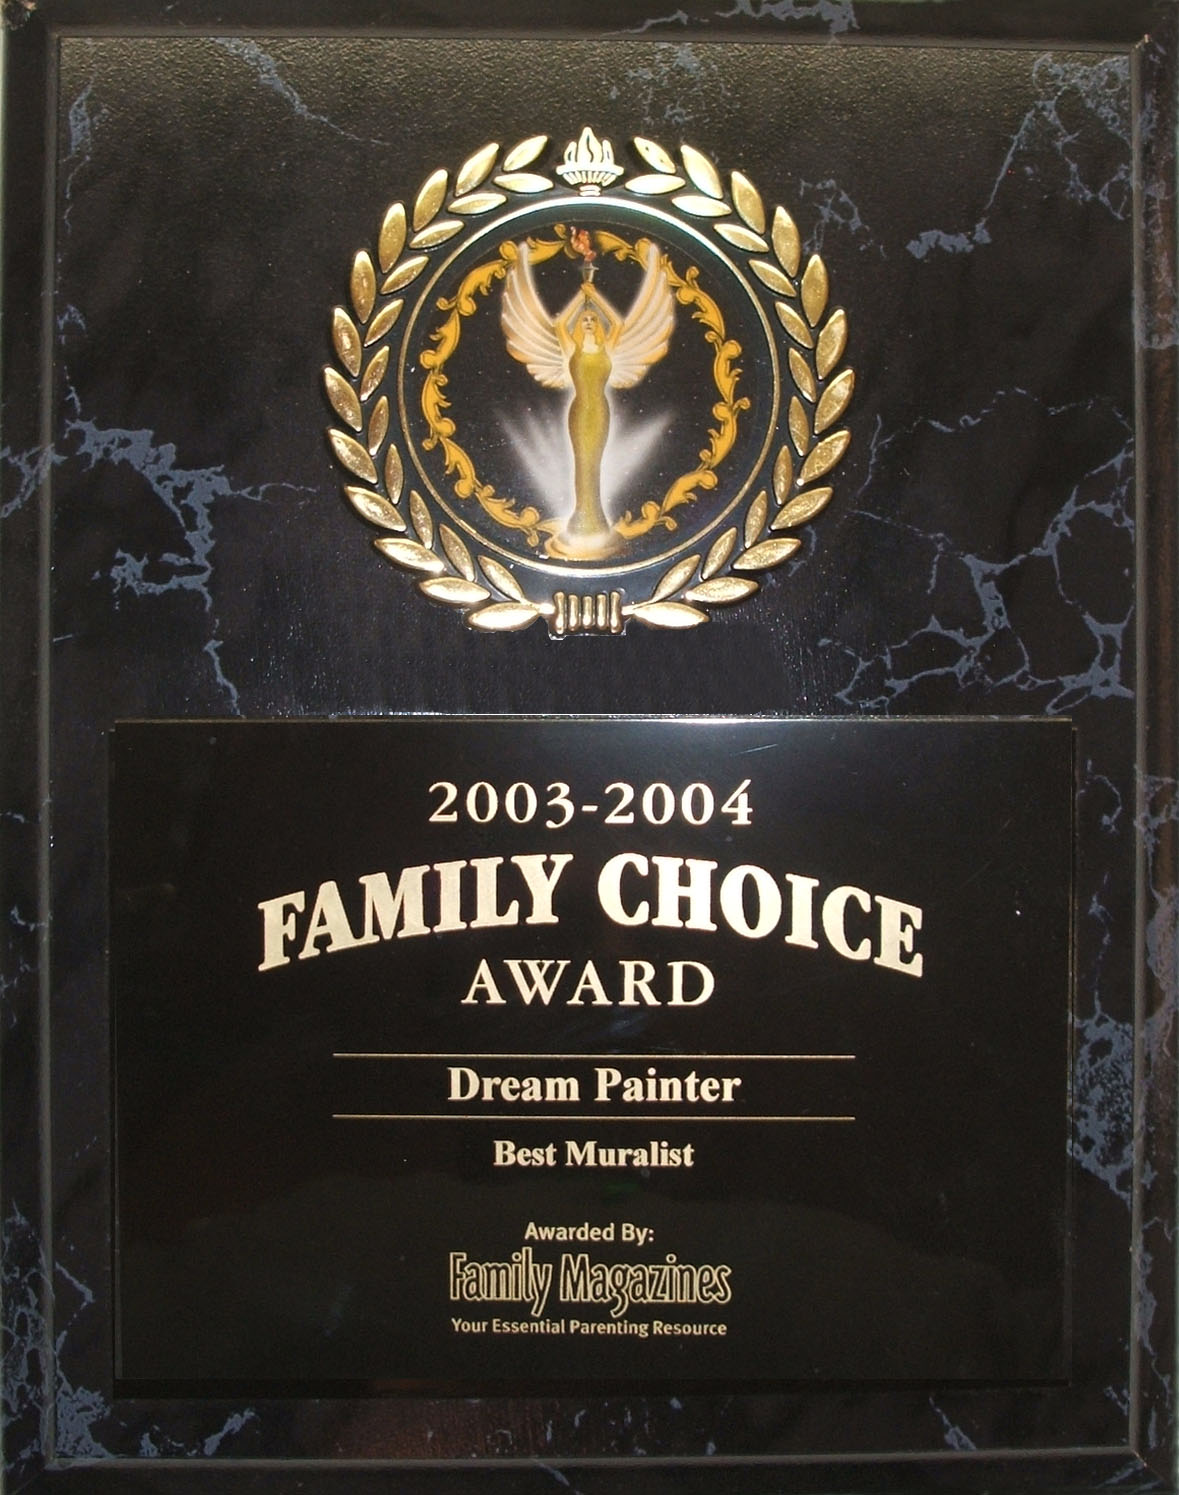 Award by Family Magazines